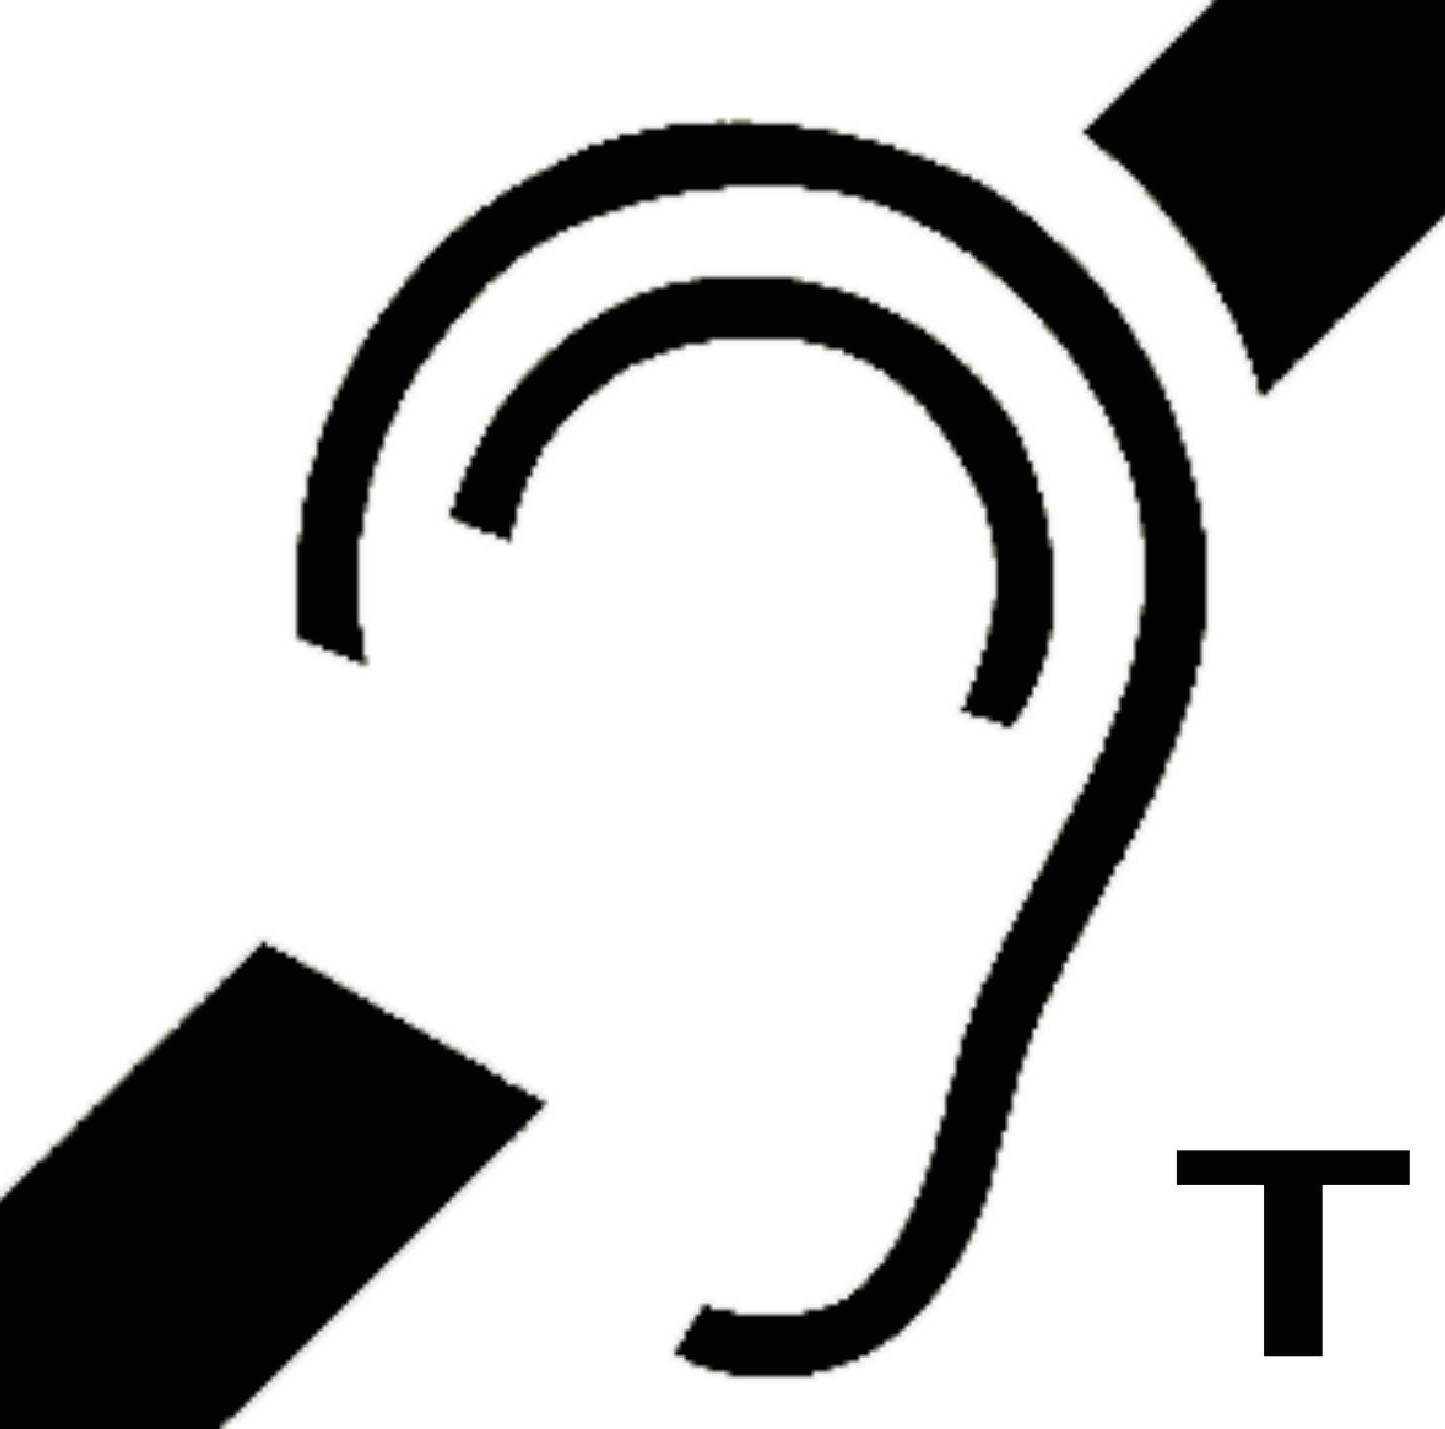 First united methodist church of upland california sign language interpretation available hearing loop t coil system available biocorpaavc Choice Image